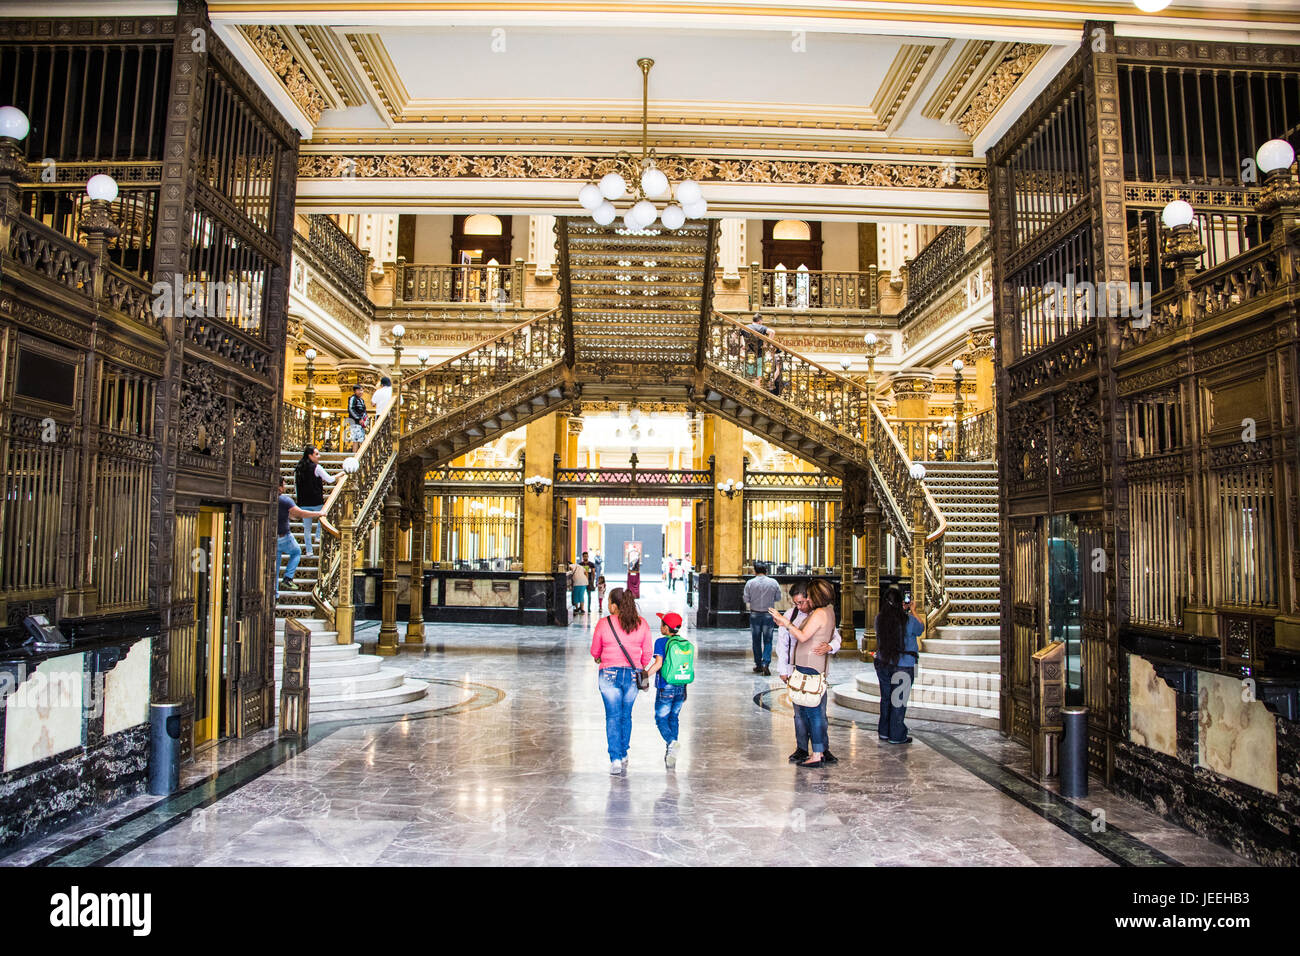 Palacio De Correos De Mexico or Postal Palace of Mexico City, Mexico - Stock Image